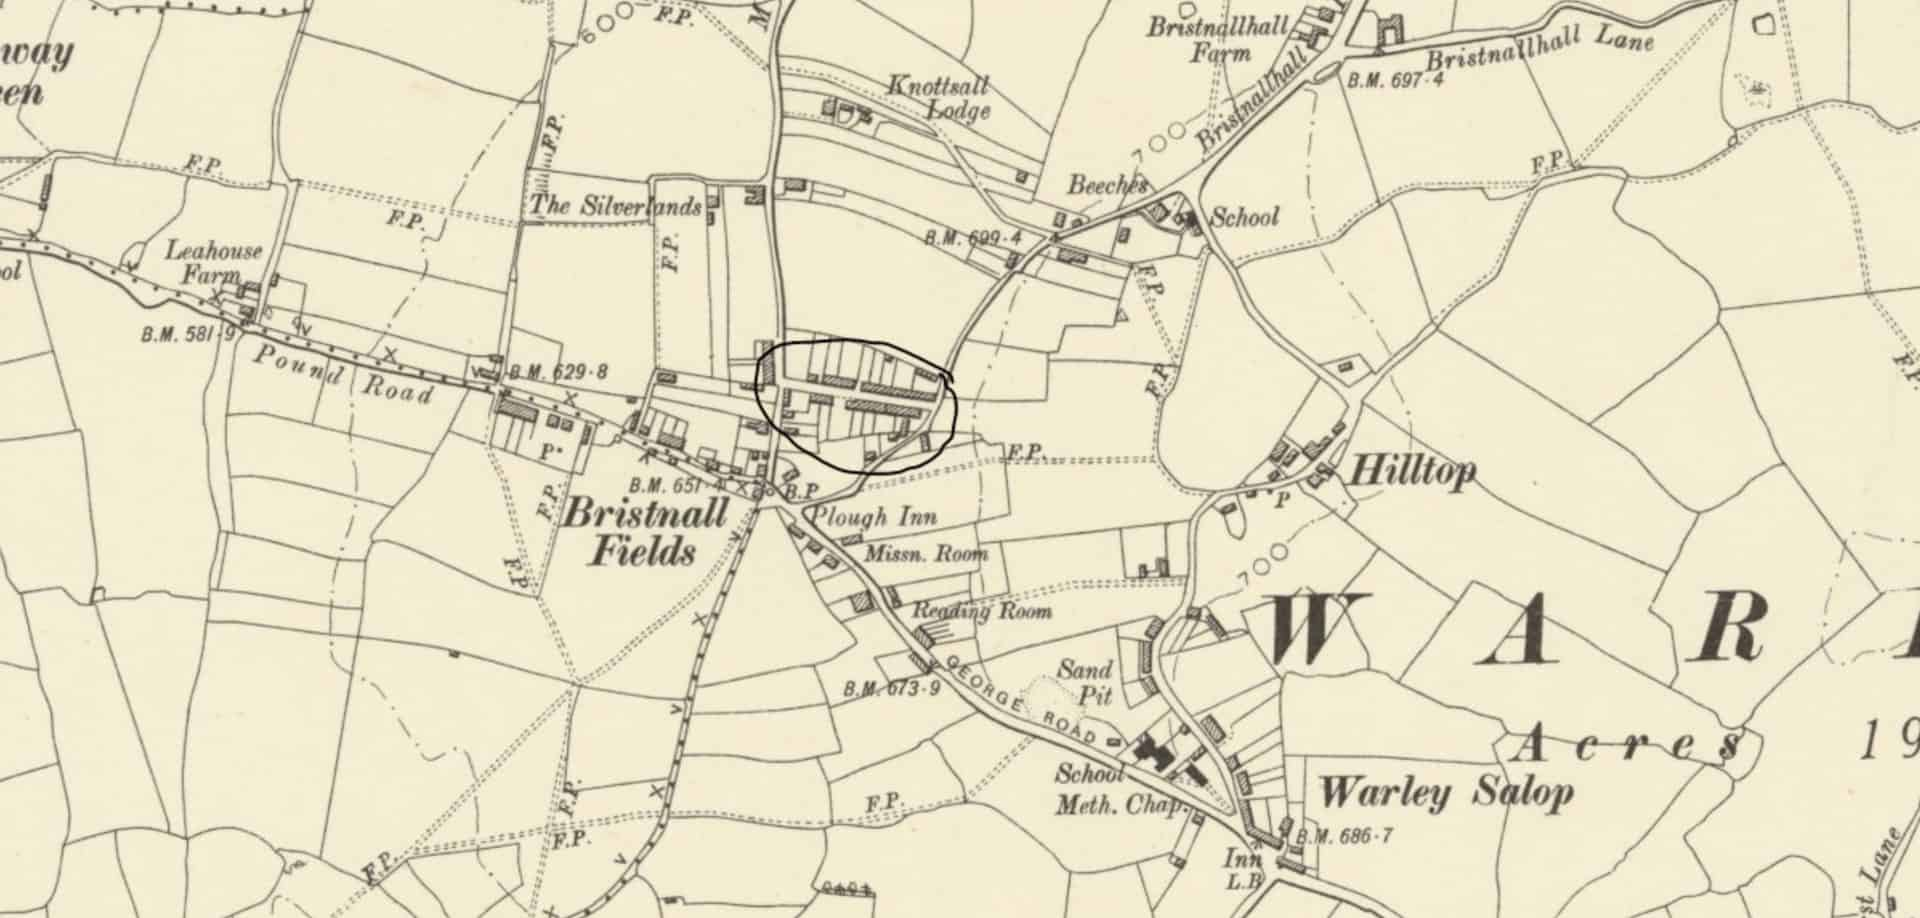 19th century map of Old Warley